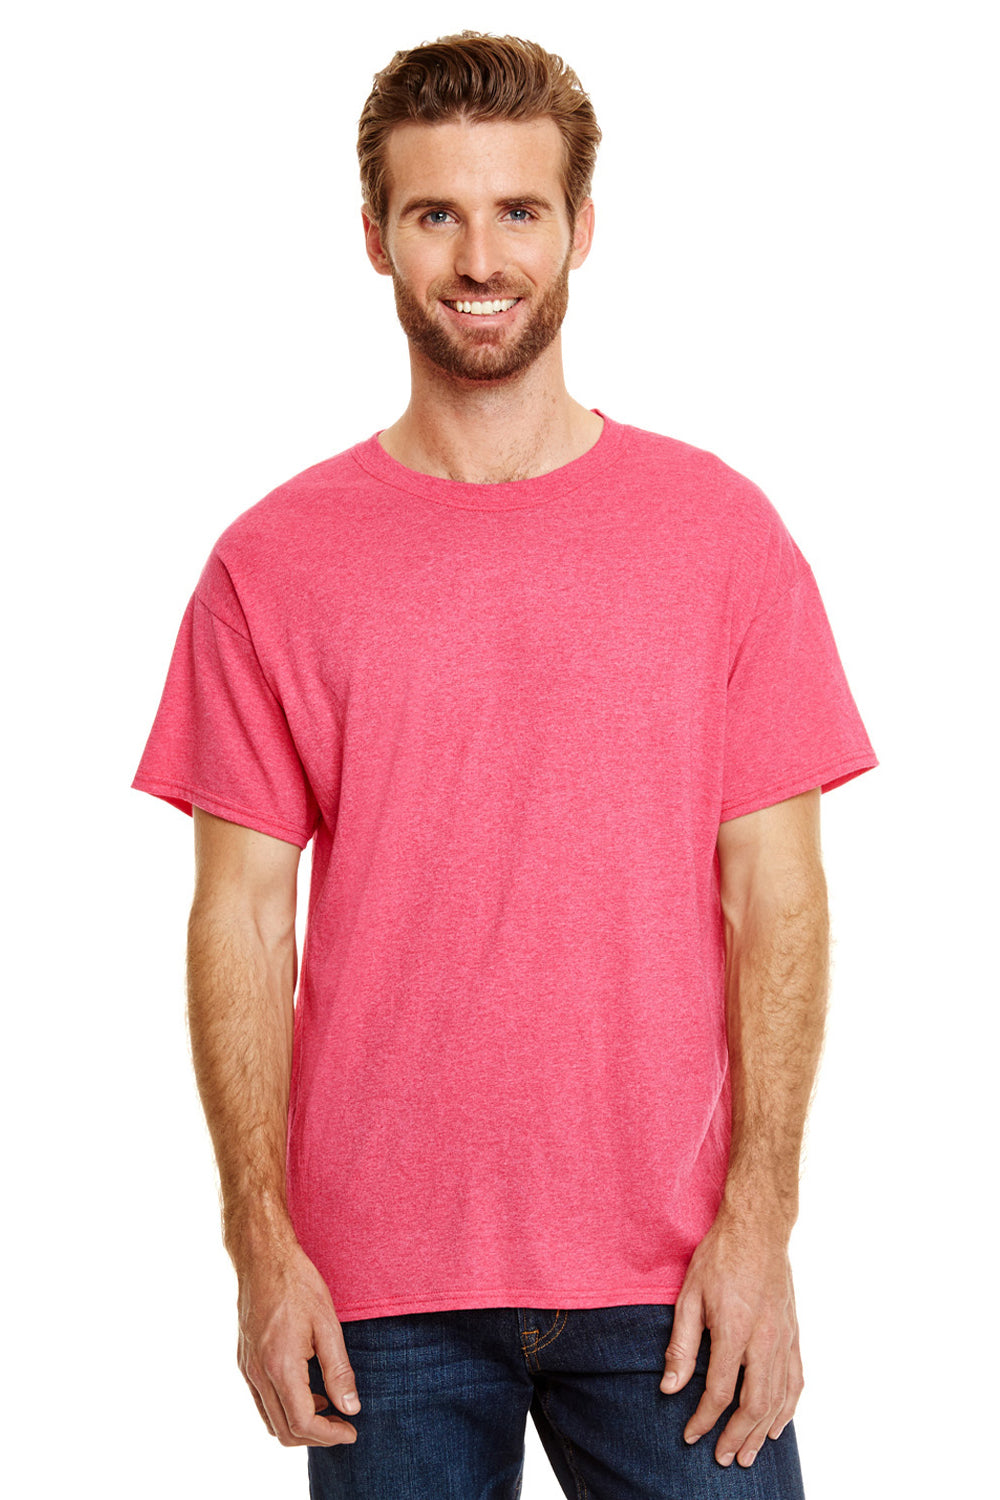 Hanes 42TB Mens X-Temp FreshIQ Moisture Wicking Short Sleeve Crewneck T-Shirt Red Front